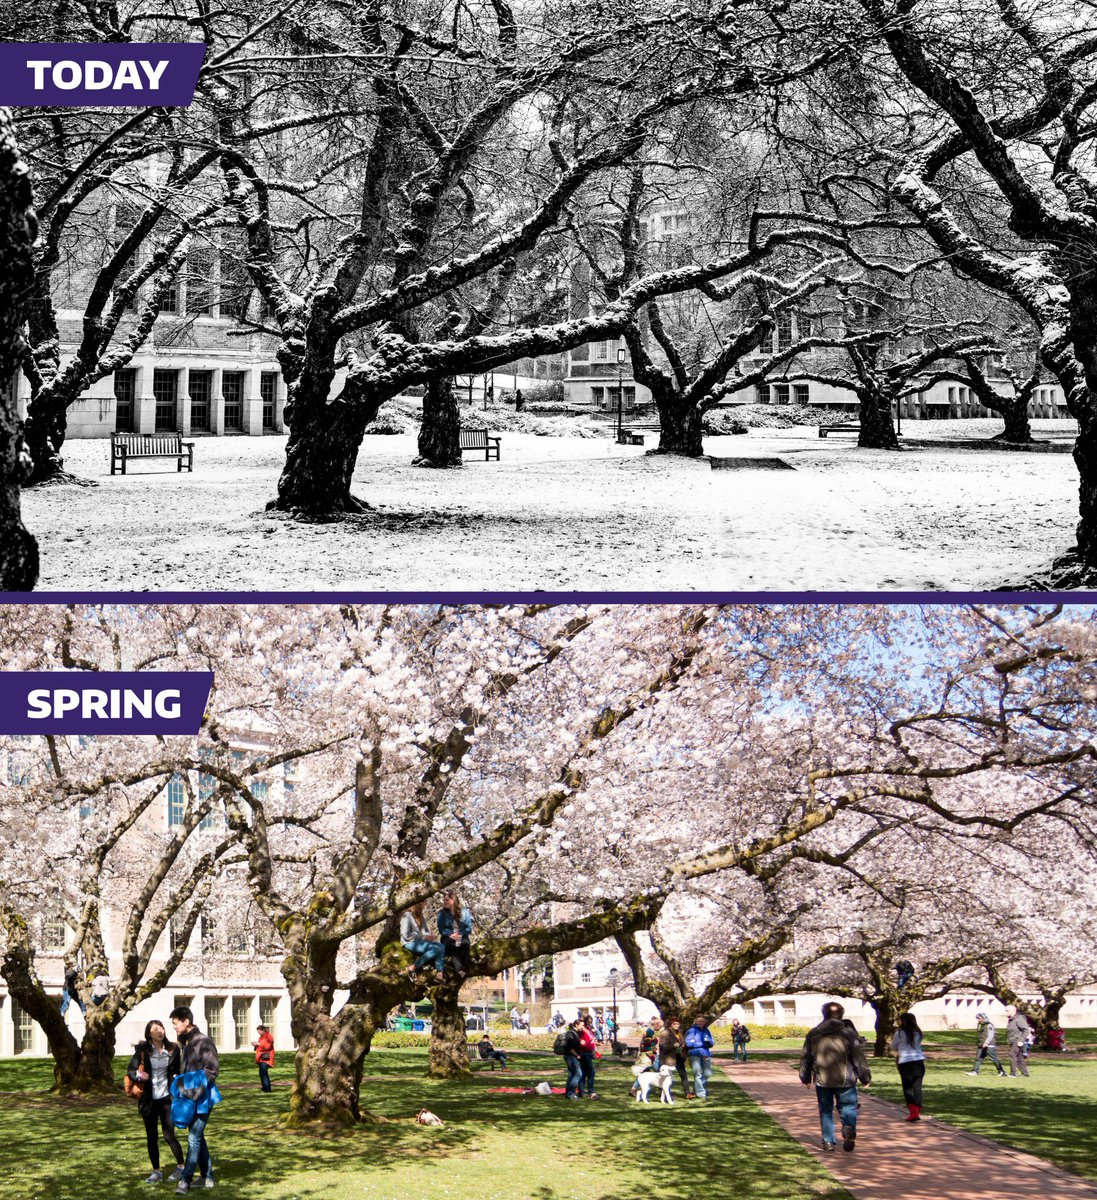 Even with all the snow, we haven&#39;t forgotten about the official @UW Cherry Blossom Watch! We&#39;re working on getting you the best info possible, hopefully by next week.  Also, a PSA: Please don&#39;t climb on the @uwcherryblossom trees.   #seattlesnow #wawx #youW<br>http://pic.twitter.com/8BvXyHt4Ob